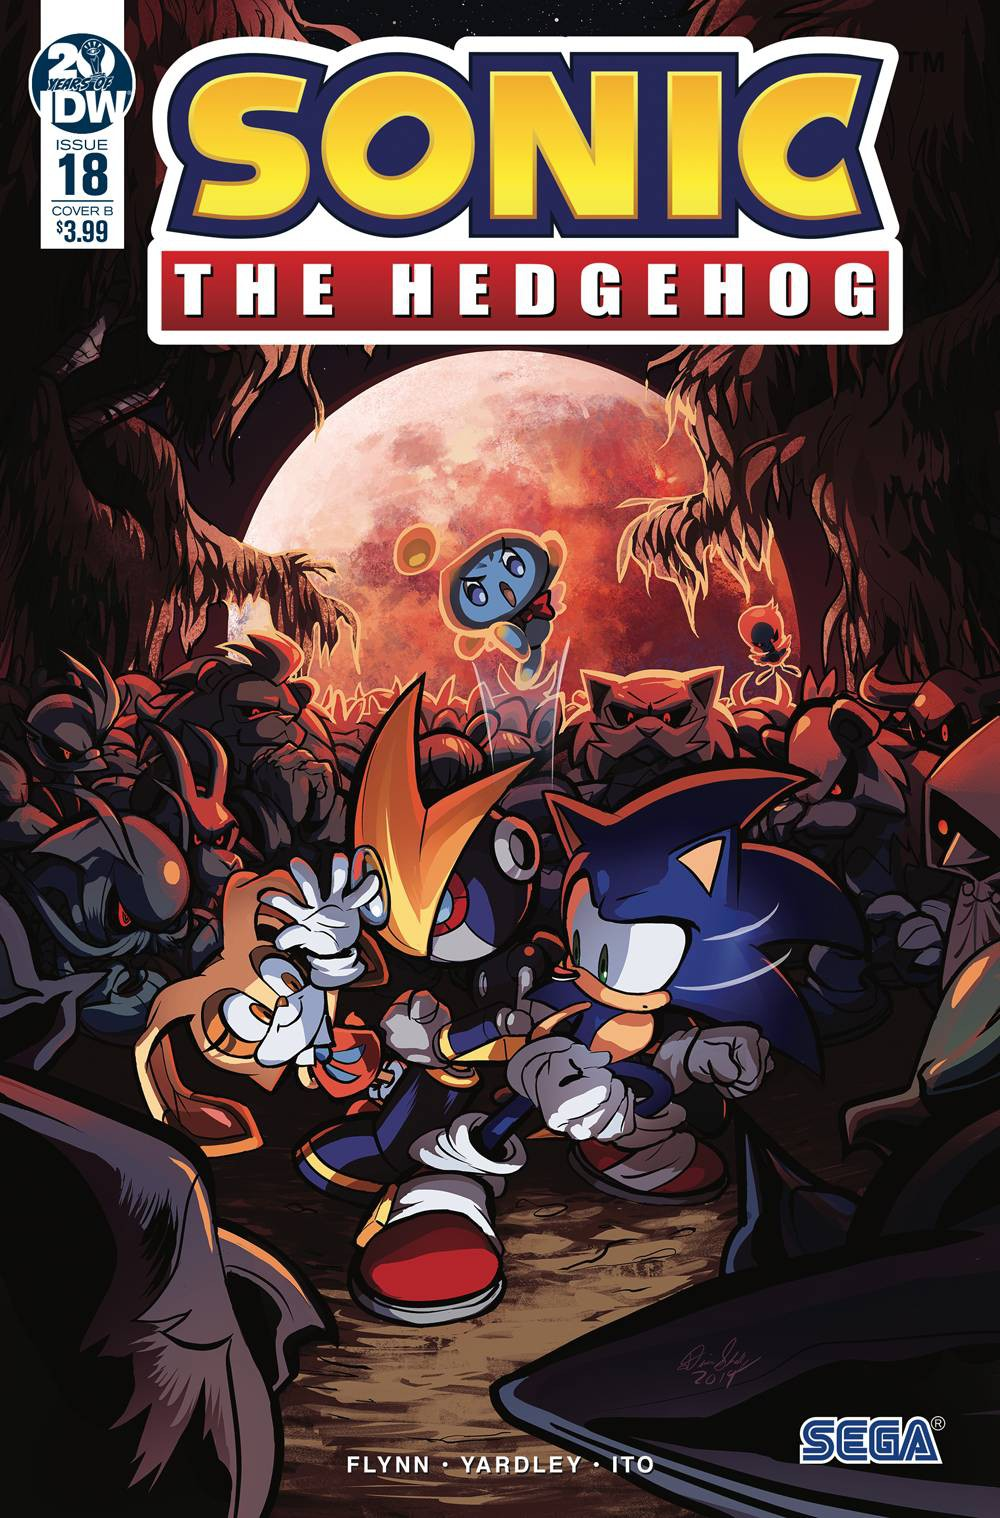 Idw Sonic The Hedgehog 18 Comic Book Diana Skelly Variant Cover Ebay